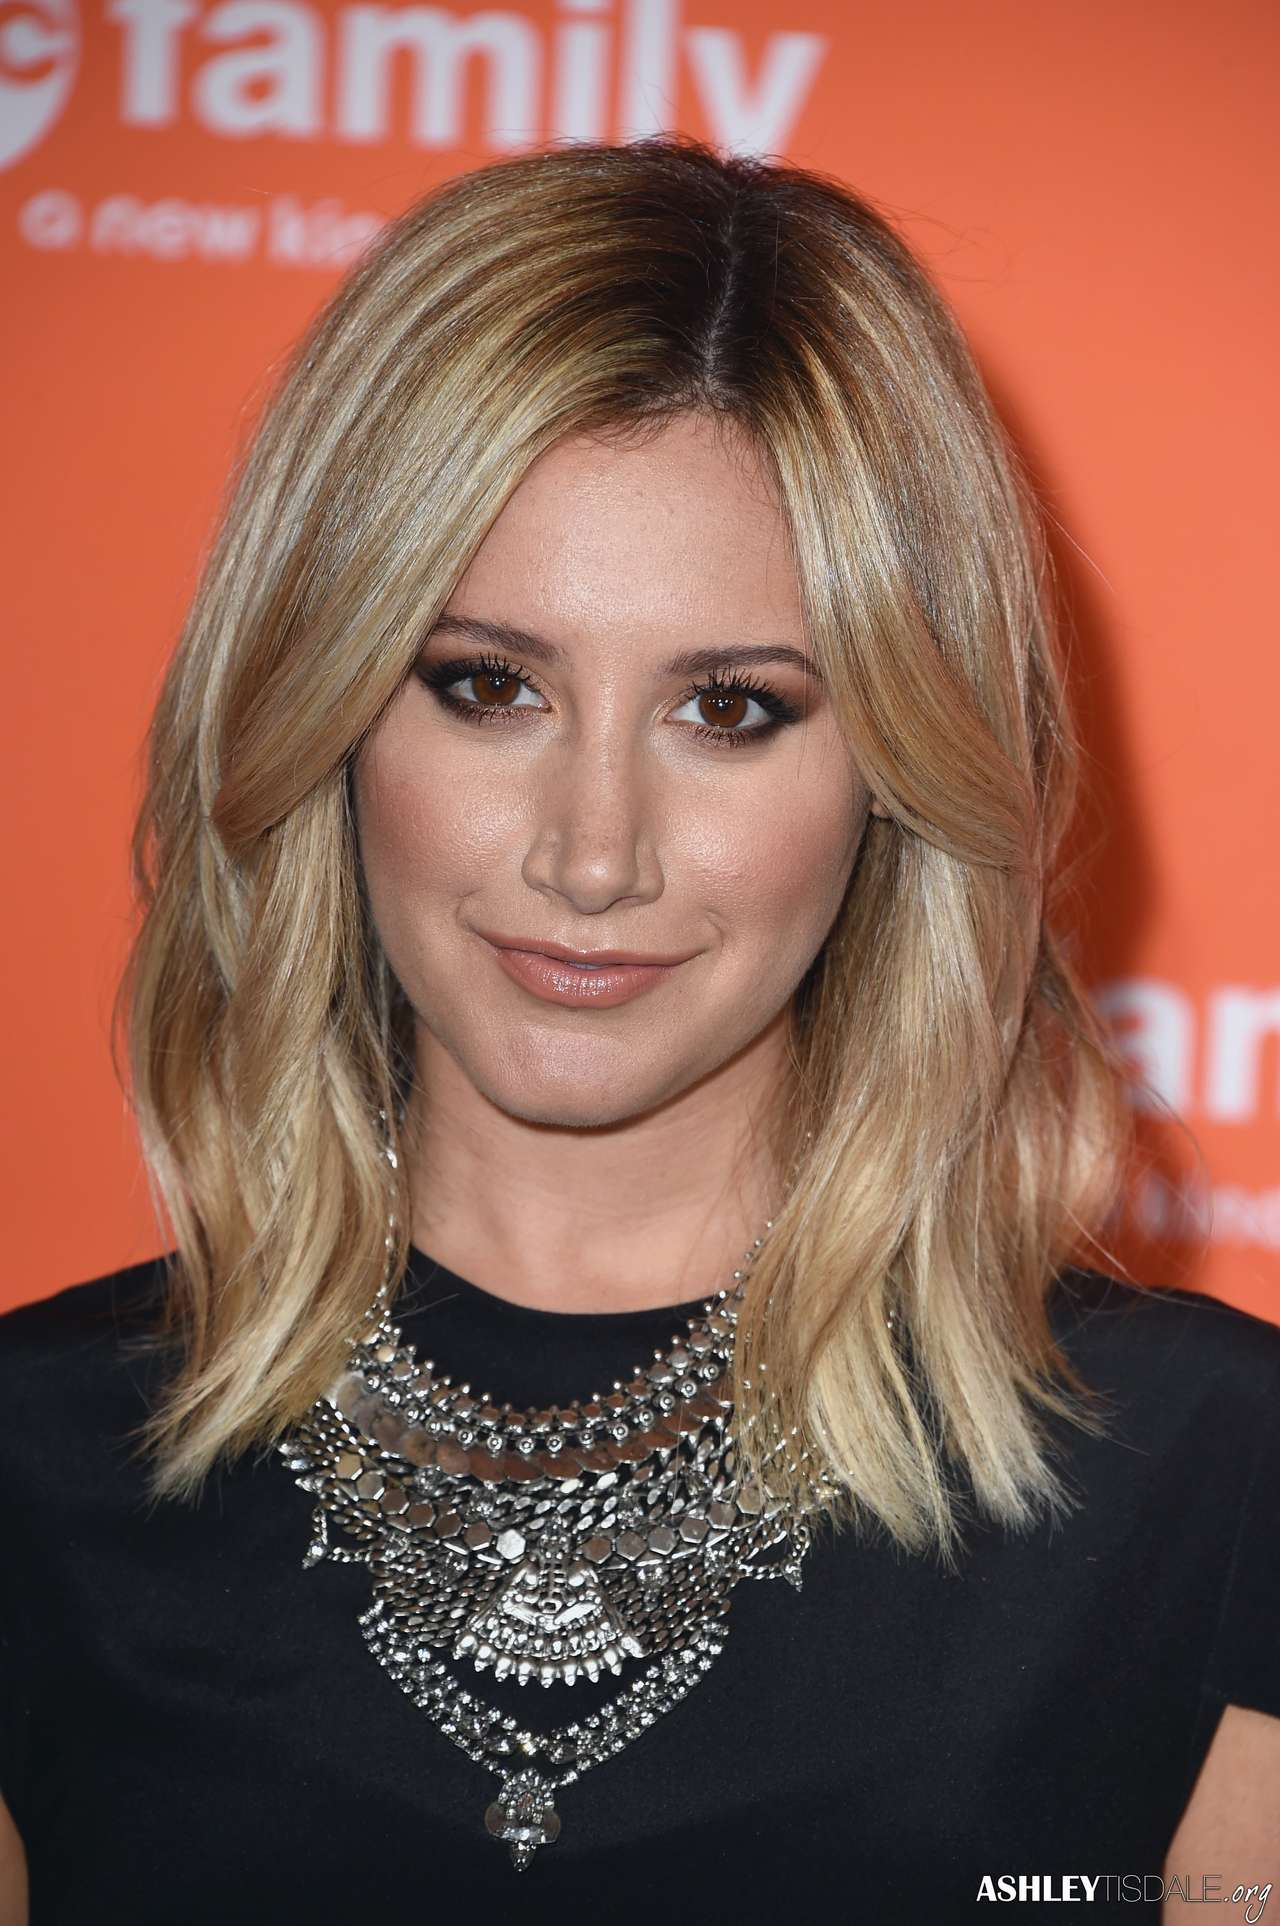 Ashley Tisdale 2014 : Ashley Tisdale at 2014 Disney ABC TCA Summer Press Tour in Beverly Hills -11